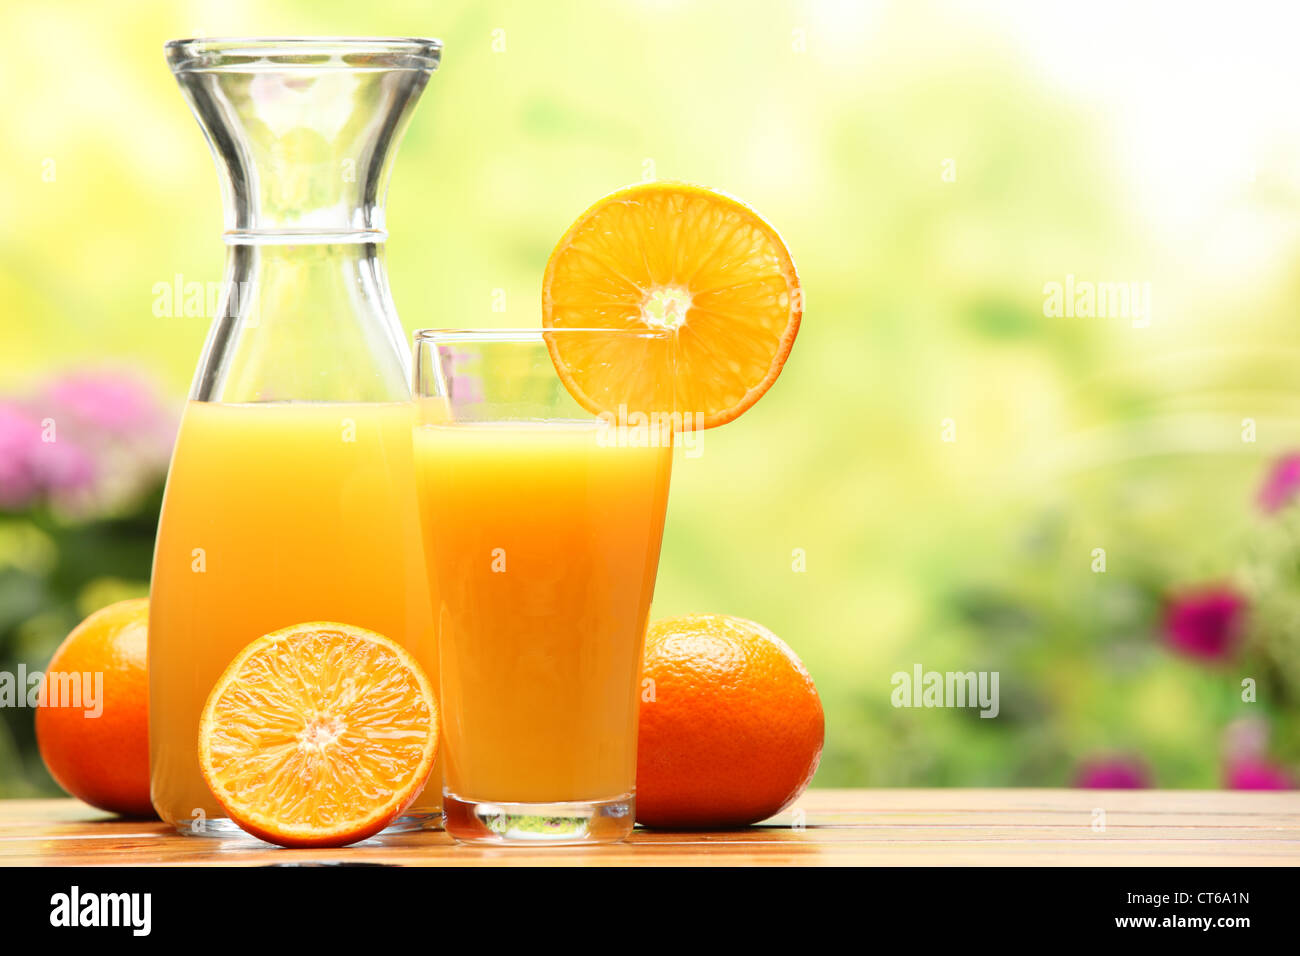 Two glasses of orange juice and fruits - Stock Image